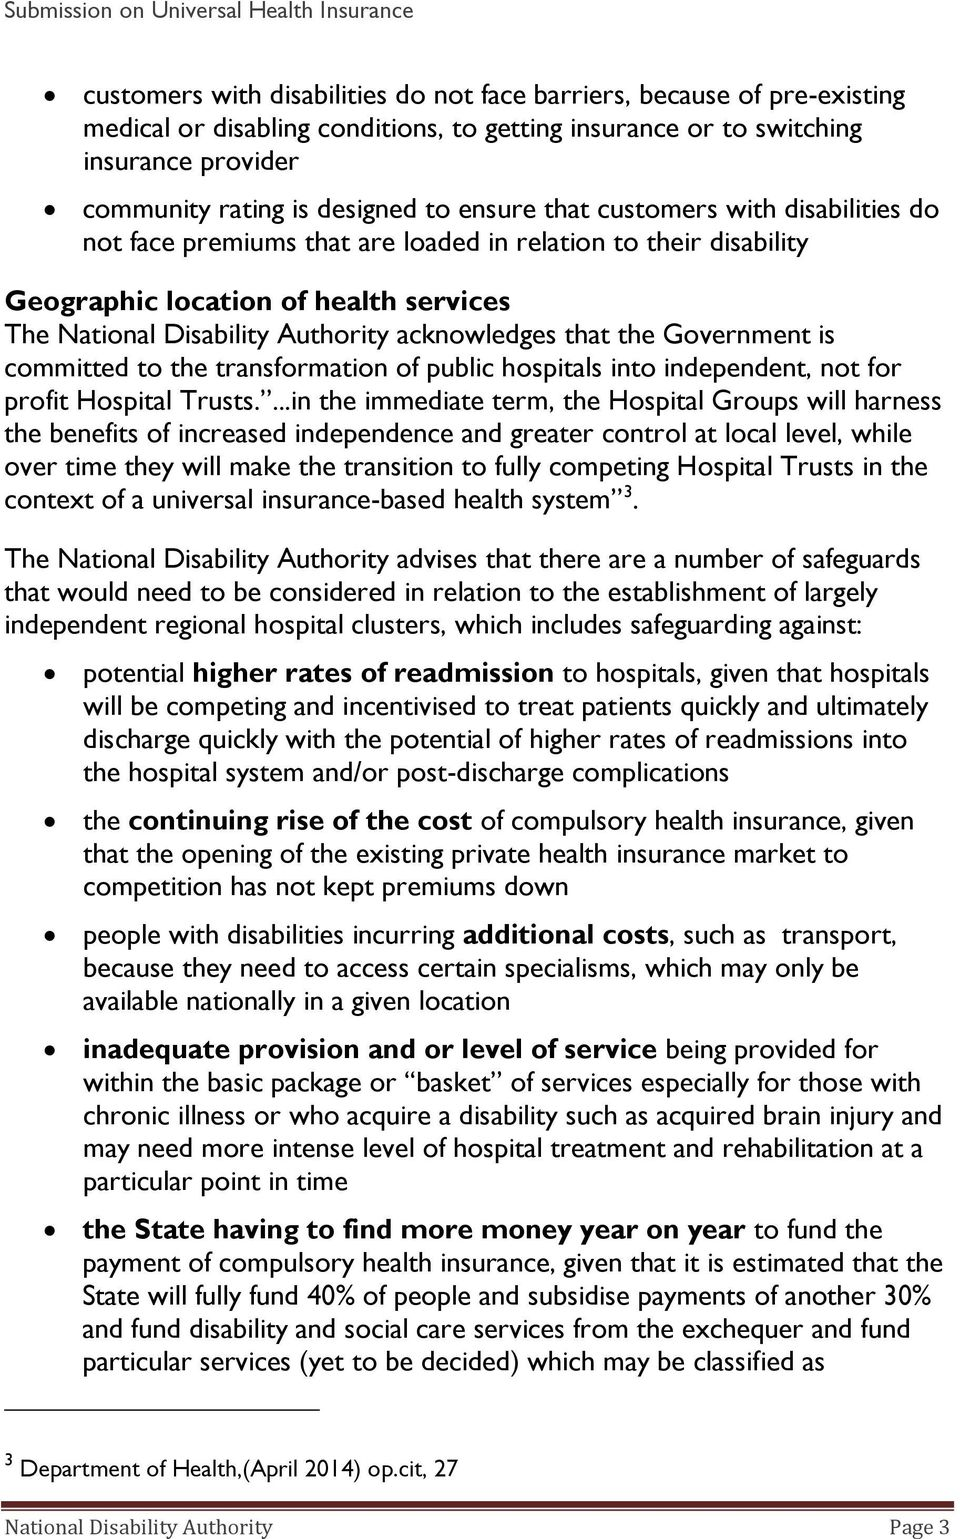 the Government is committed to the transformation of public hospitals into independent, not for profit Hospital Trusts.